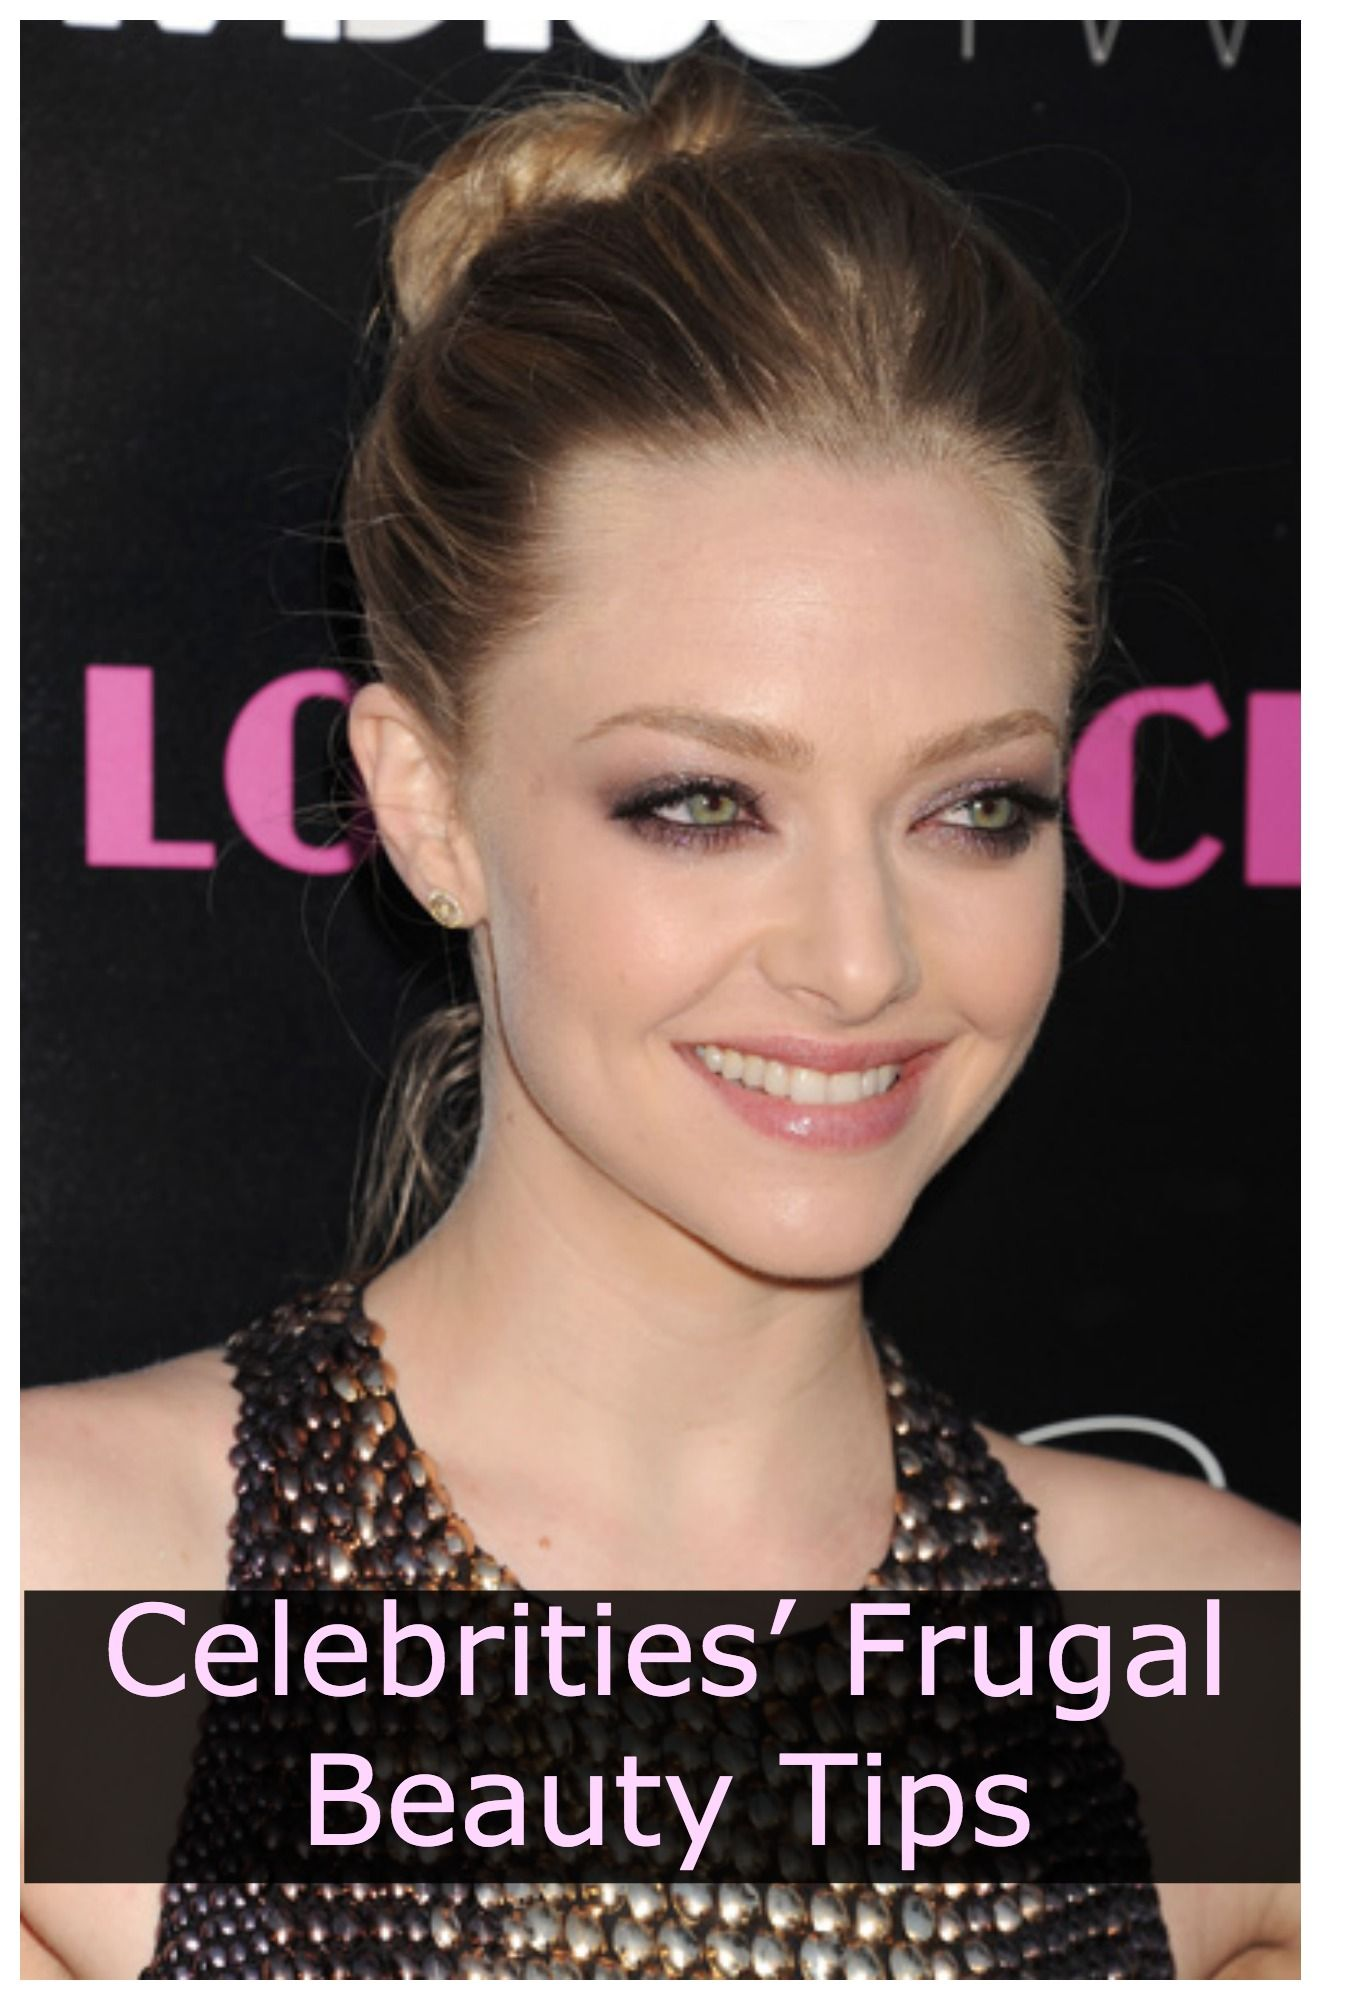 7 Celebrities' Frugal BeautyTips